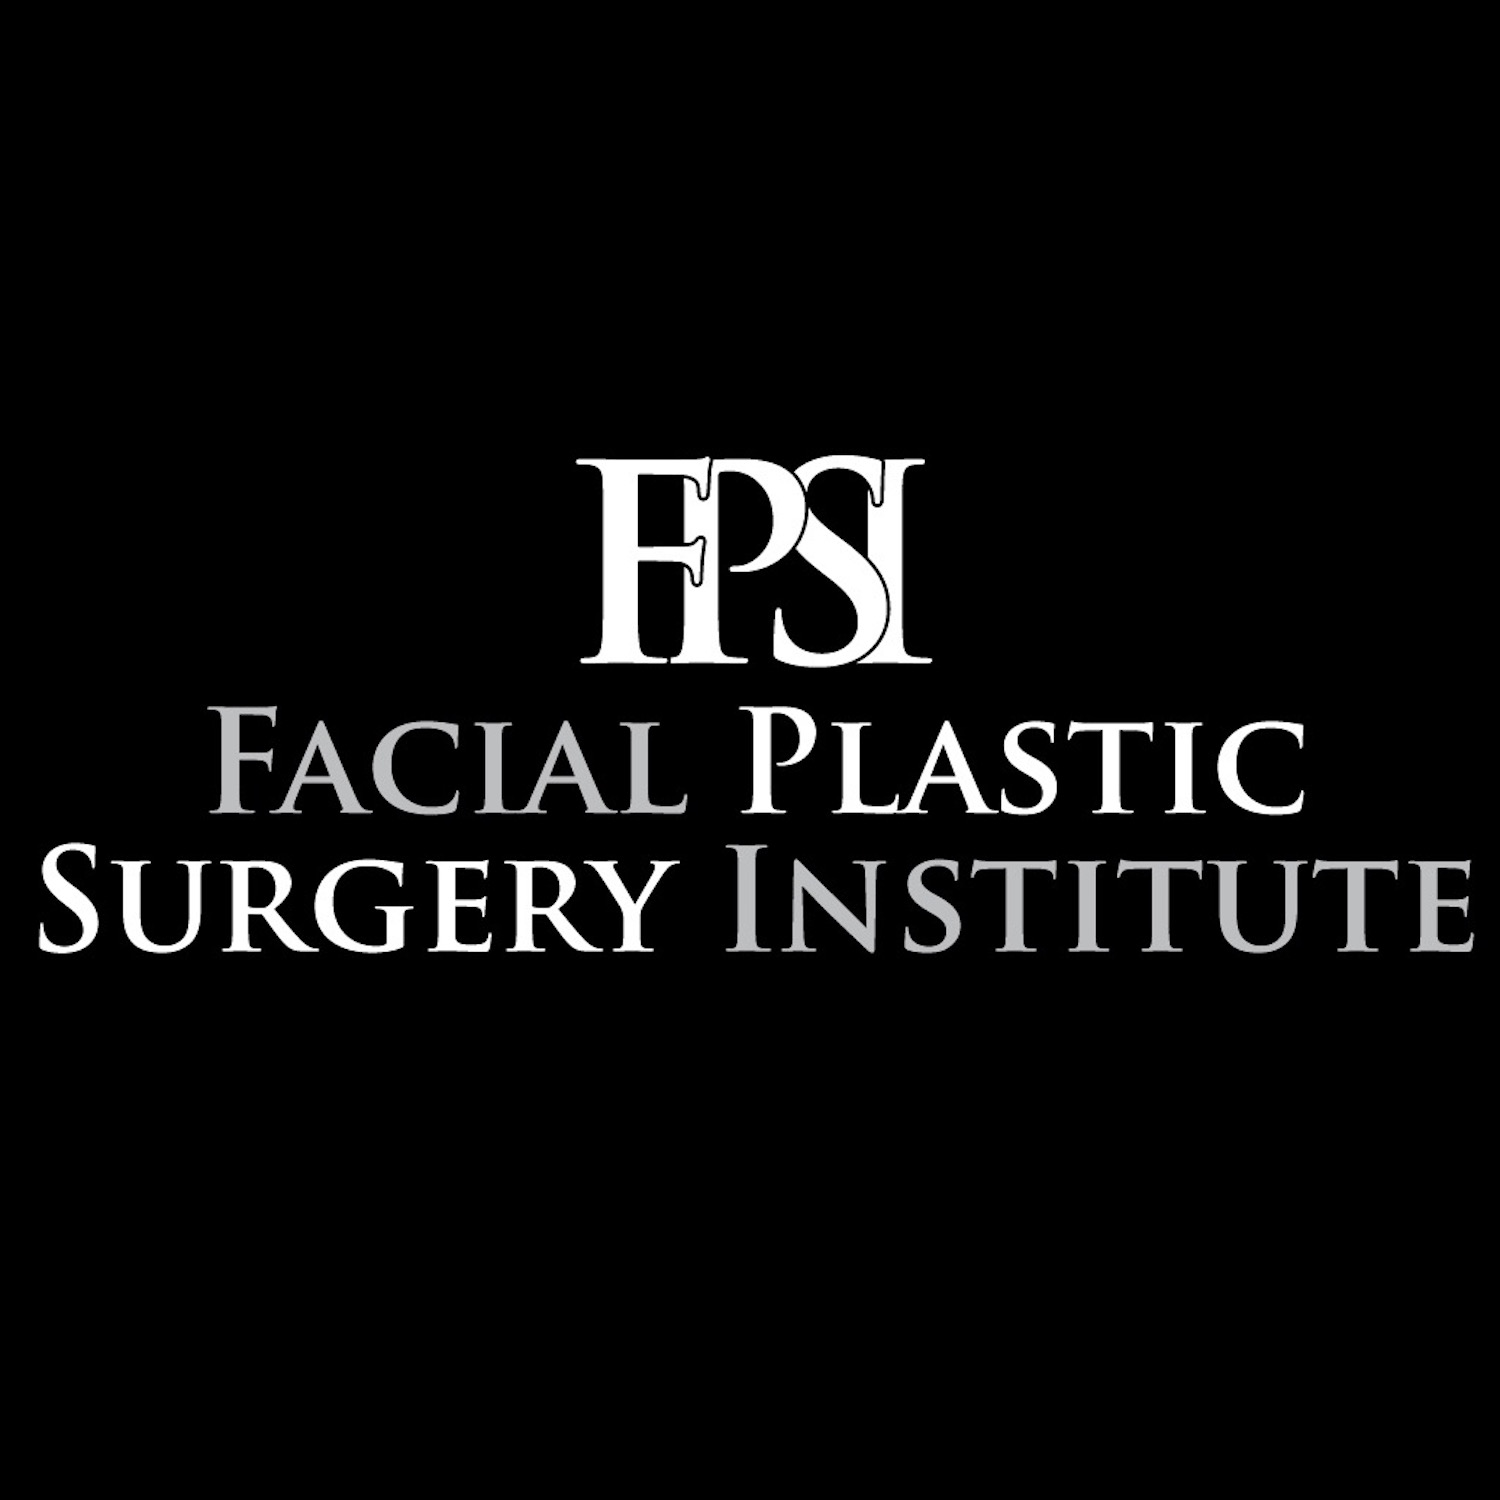 Facial Plastic Surgery Institute Blog and Podcast - Facial Plastic Surgery Institute - Dr. Jordan Rihani, M.D.